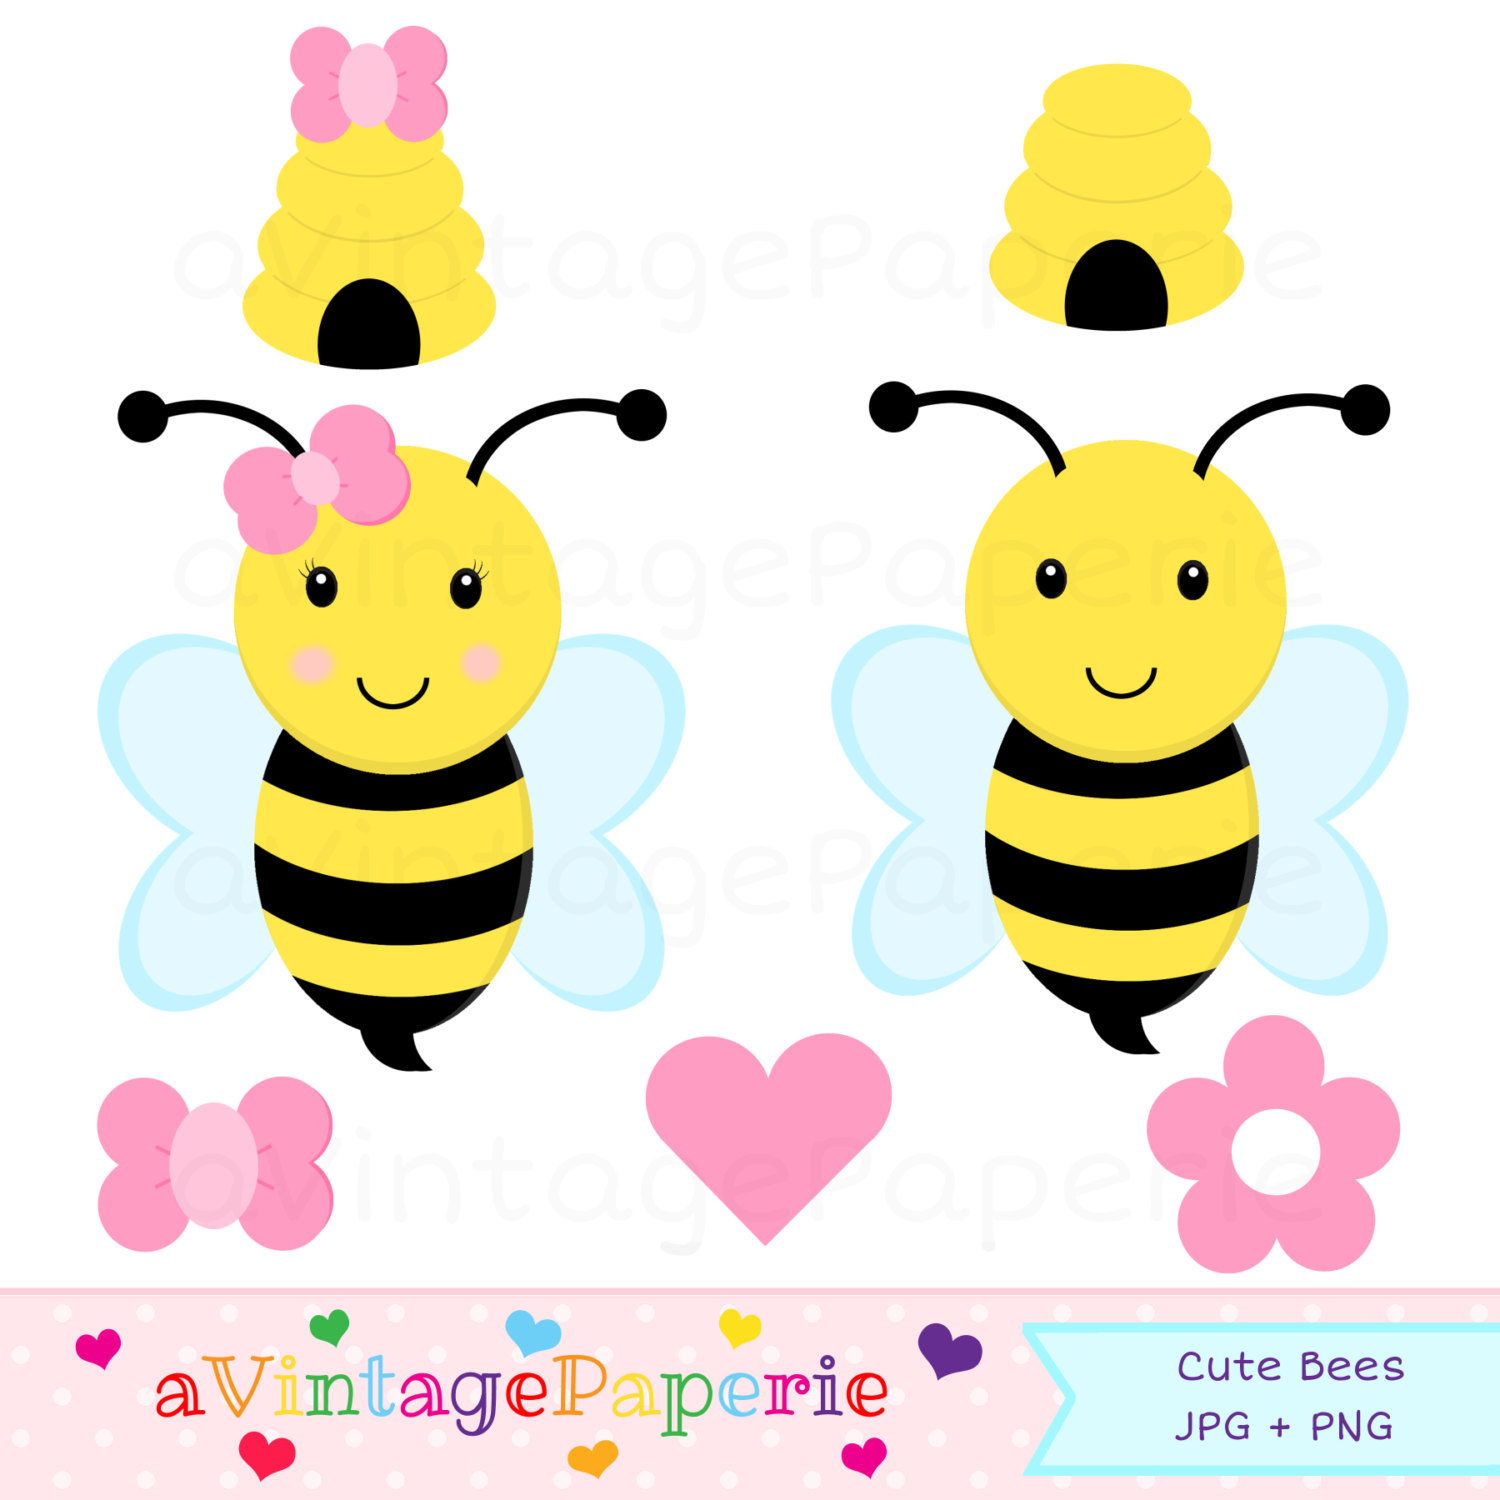 baby girl clipart at getdrawings com free for personal use baby rh getdrawings com baby items clip art free images baby items clipart free